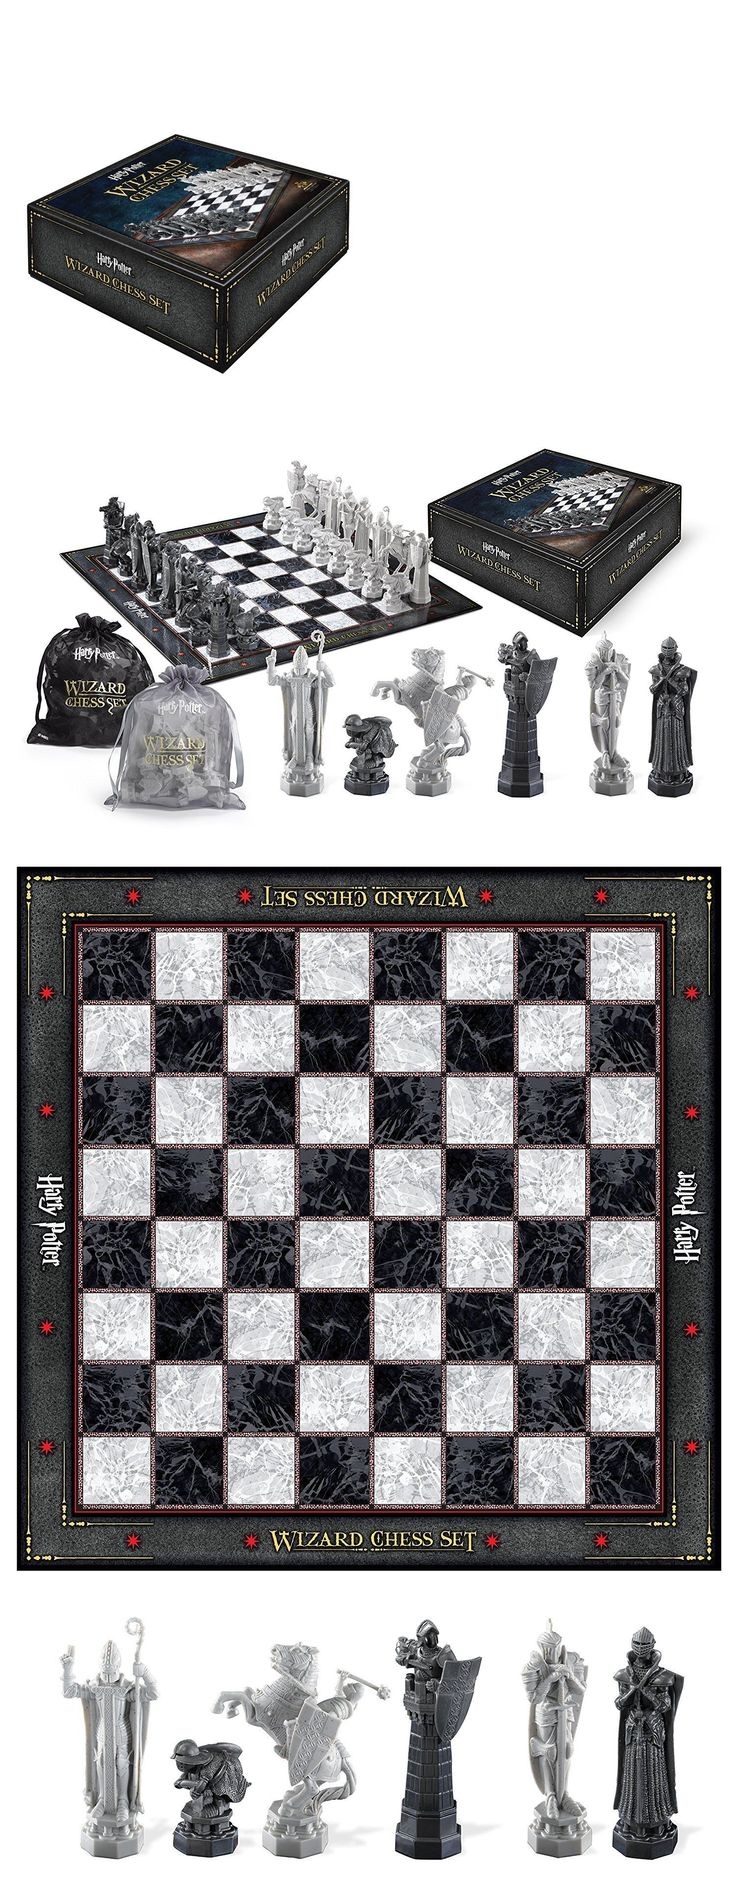 Contemporary Chess 40856: Noble Collection Harry Potter Wizard Chess Set Nn7580 Board Game Kit New * -> BUY IT NOW ONLY: $47.69 on eBay!